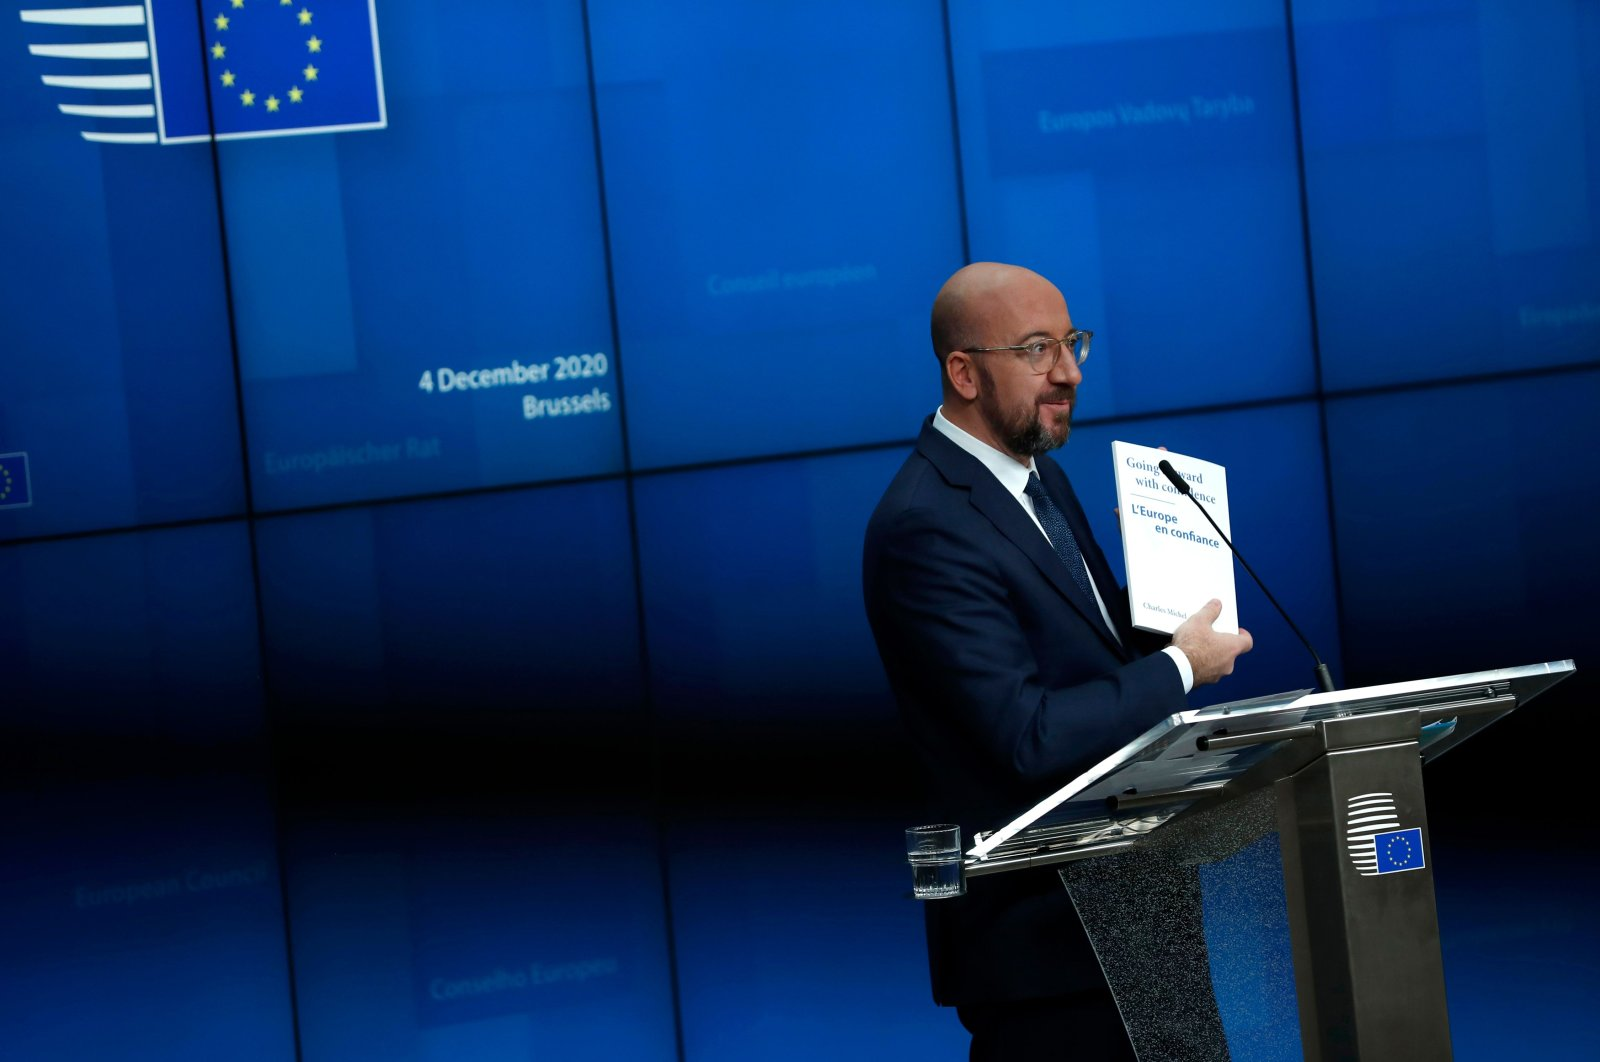 European Council President Charles Michel shows a document during a news conference marking his first year as president at the European Council headquarters in Brussels, Belgium, Dec. 4, 2020. (AFP Photo)